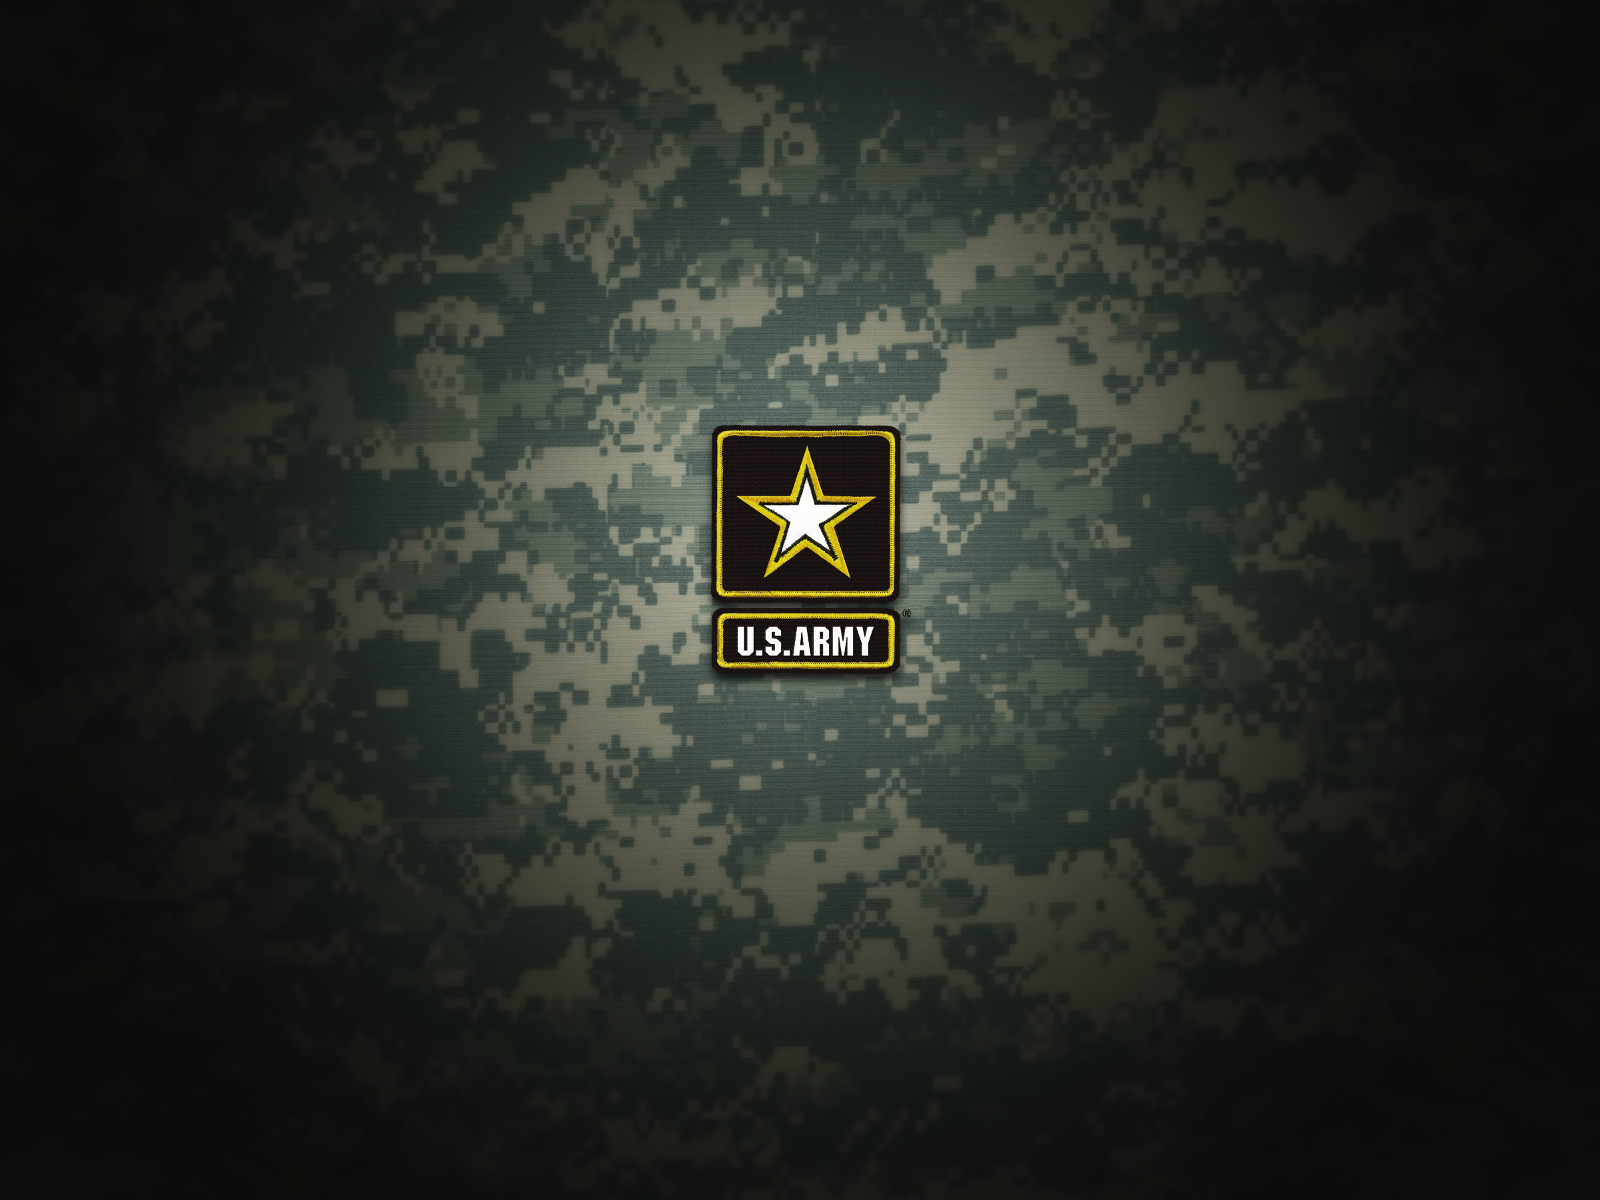 Army Love Wallpaper Hd : us army wallpapers logo - HD Desktop Wallpapers 4k HD